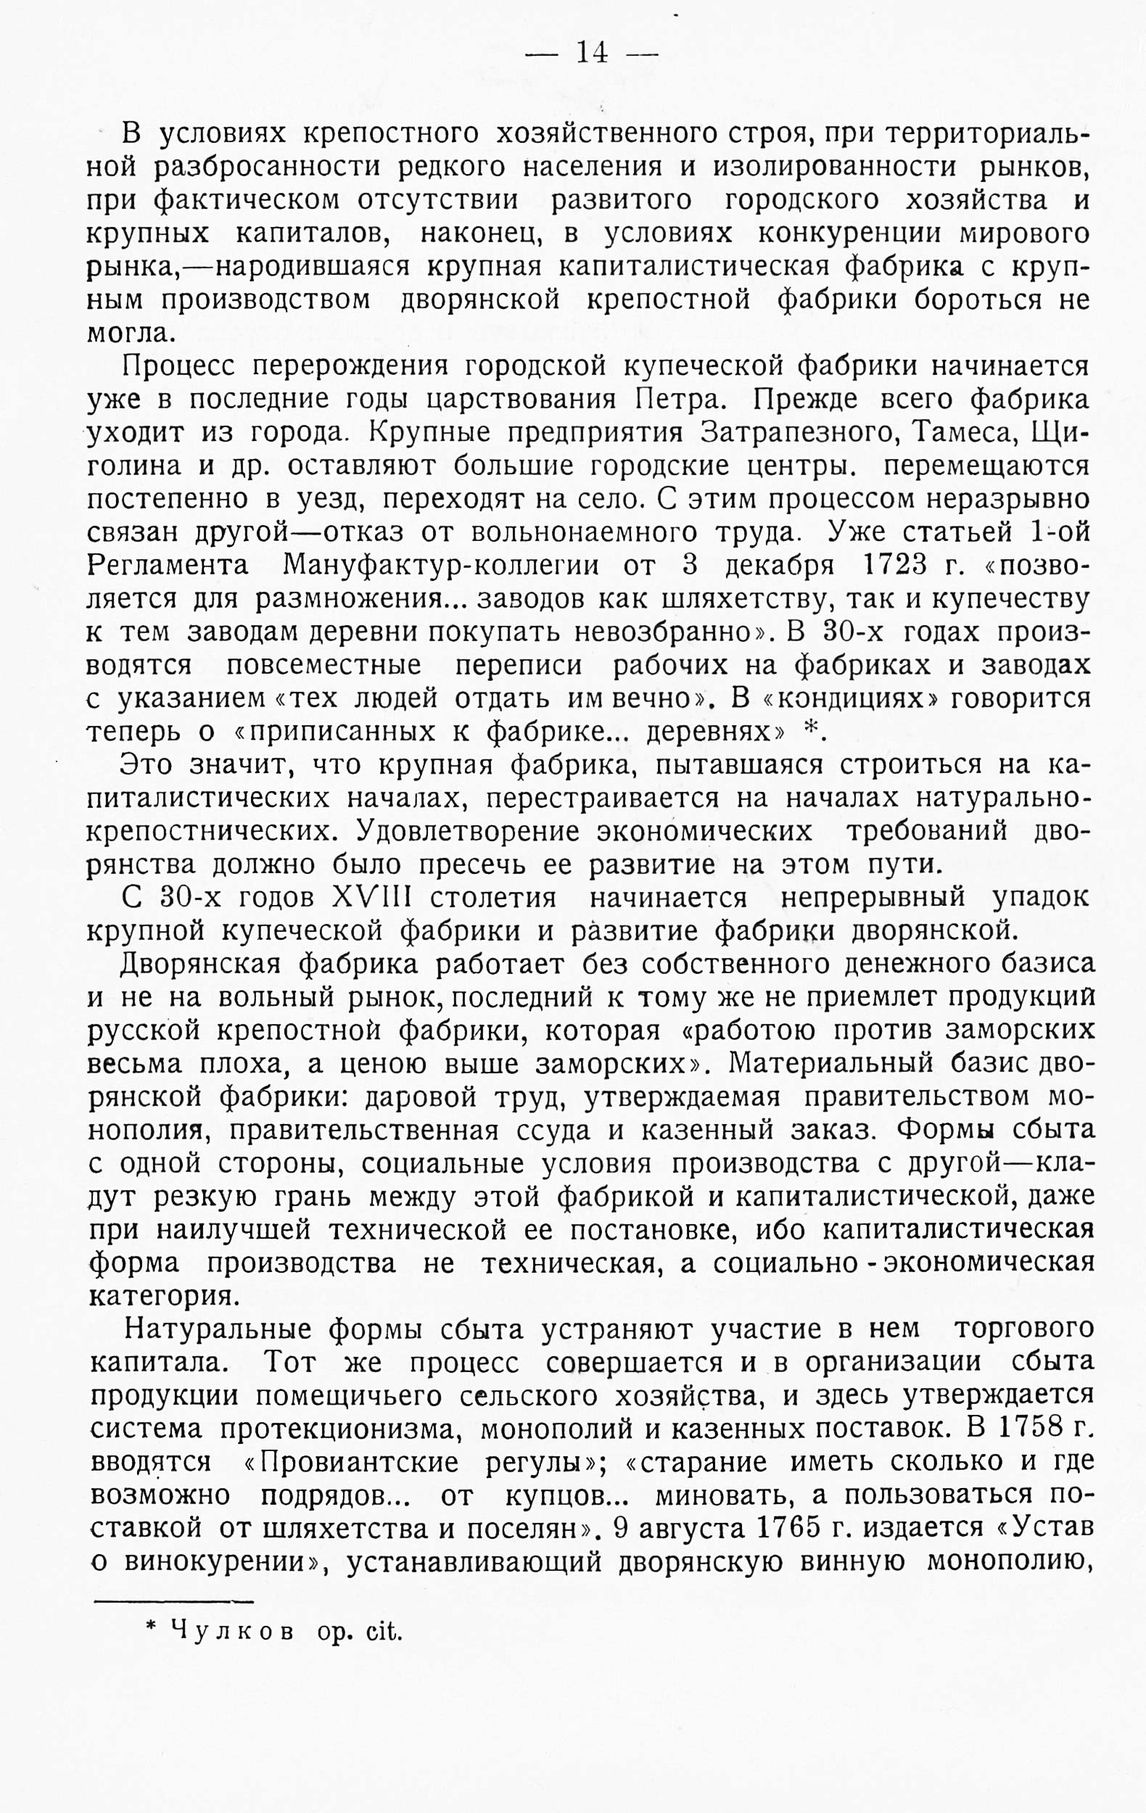 http://elib.shpl.ru/pages/543264/zooms/7